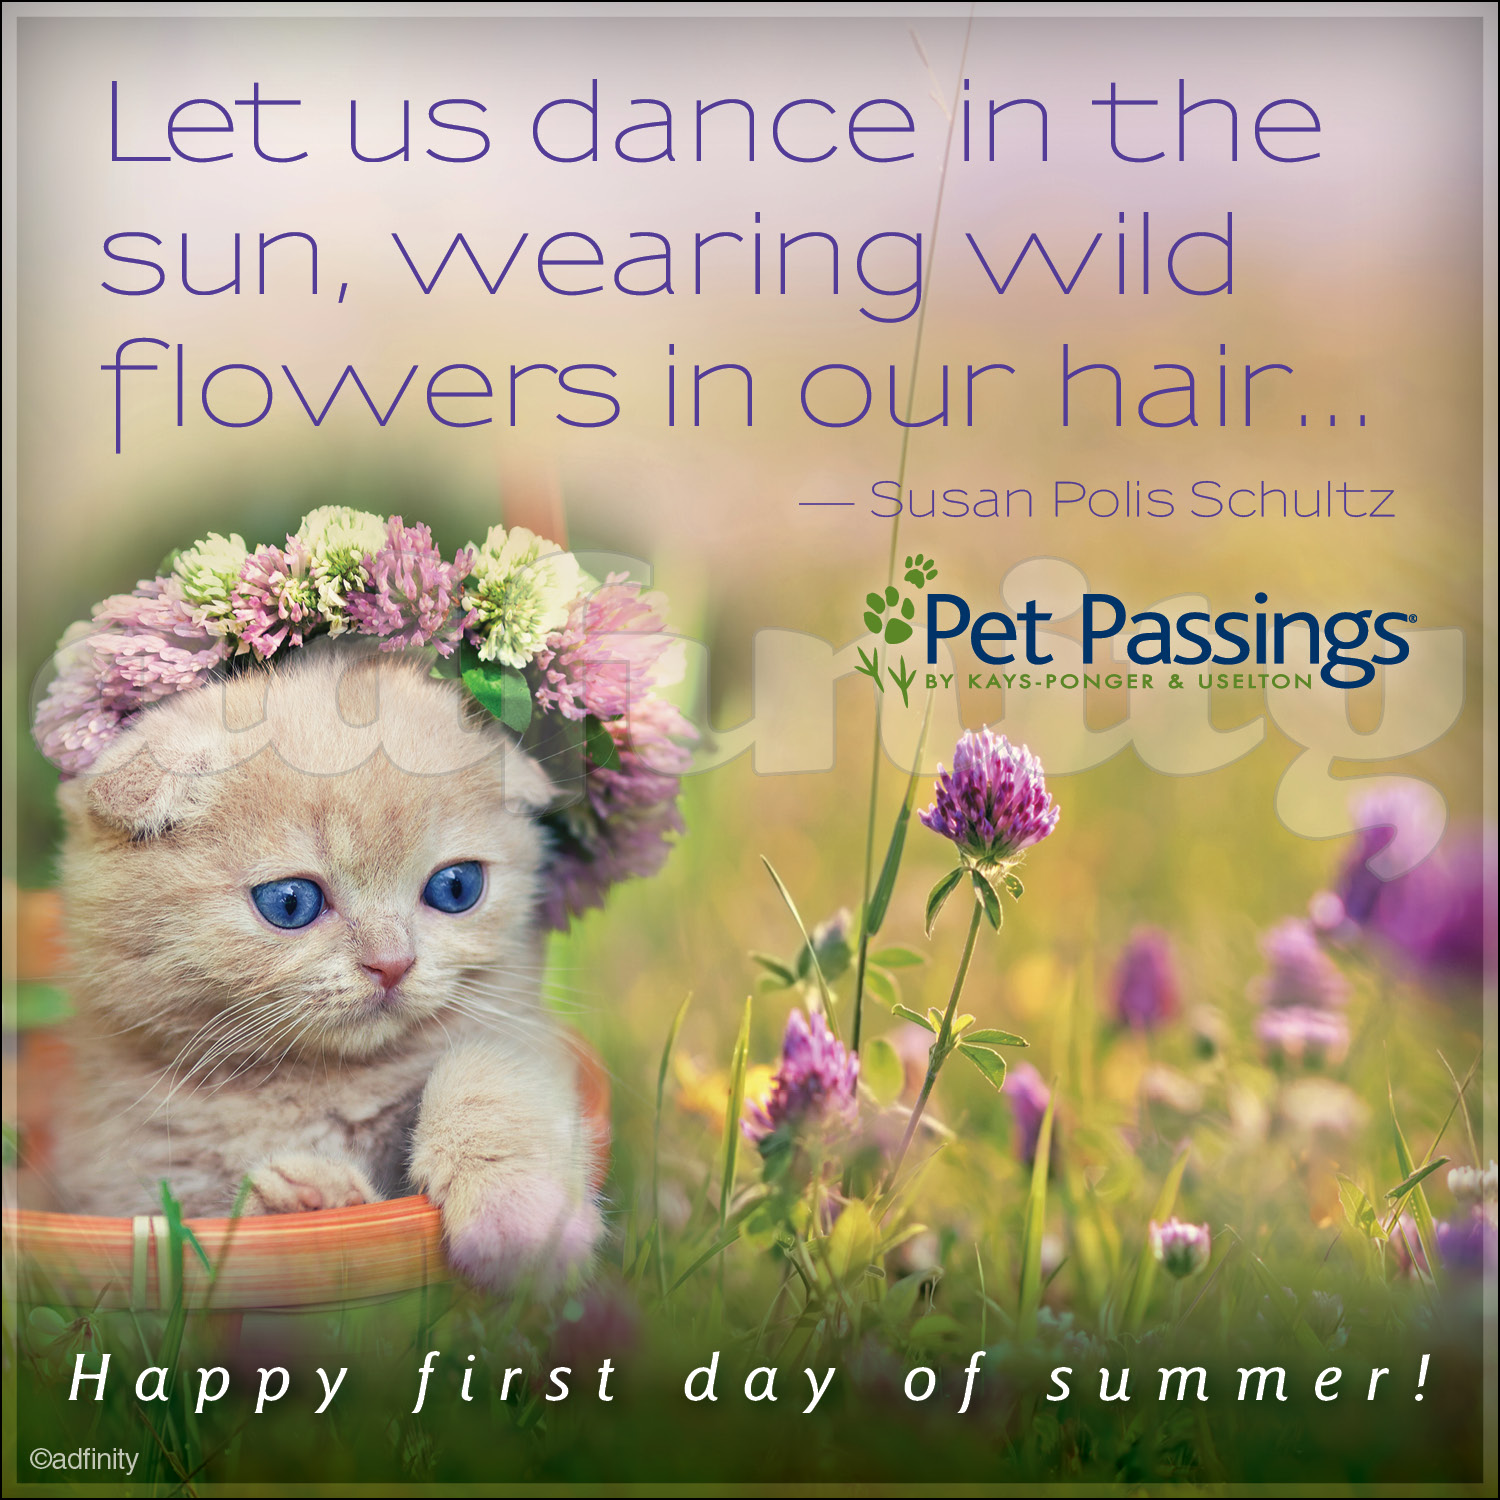 061504 Happy First Day Of Summer! Susan Polis Schultz Quote Facebook  Meme